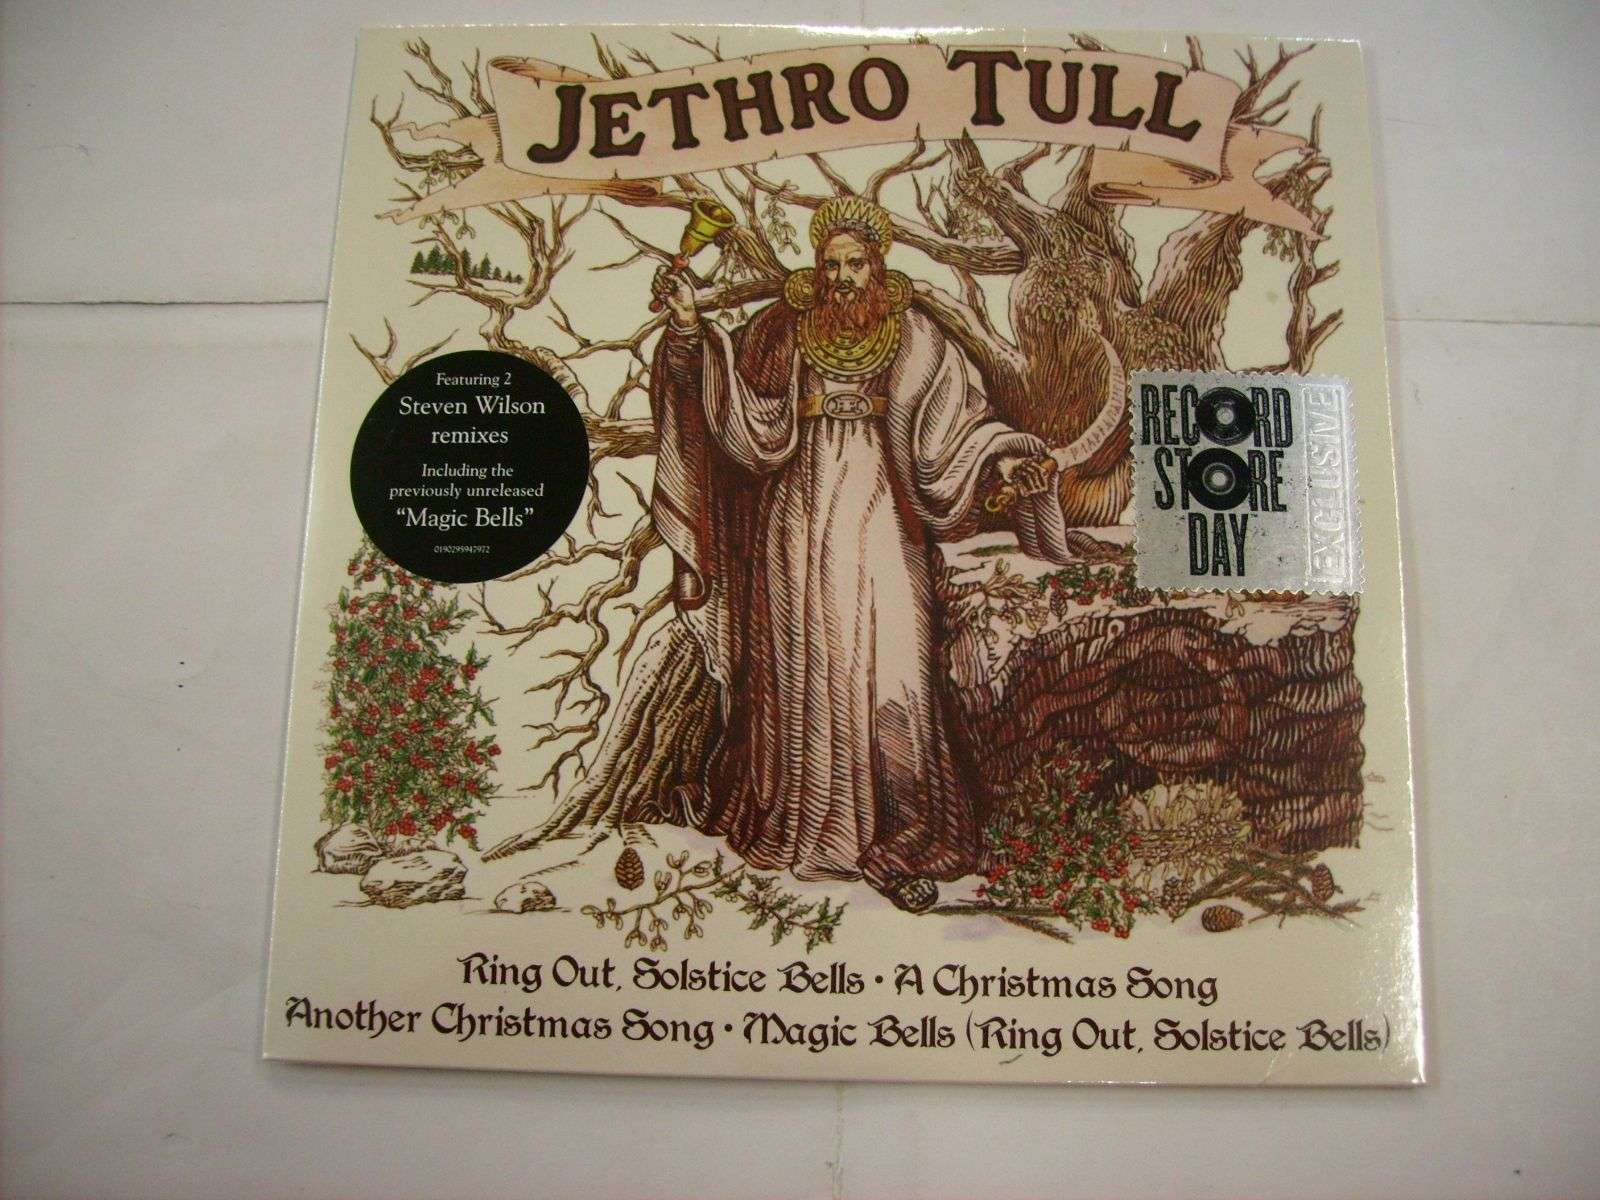 Jethro Tull Ring Out Solstice Bells Records, LPs, Vinyl and CDs ...